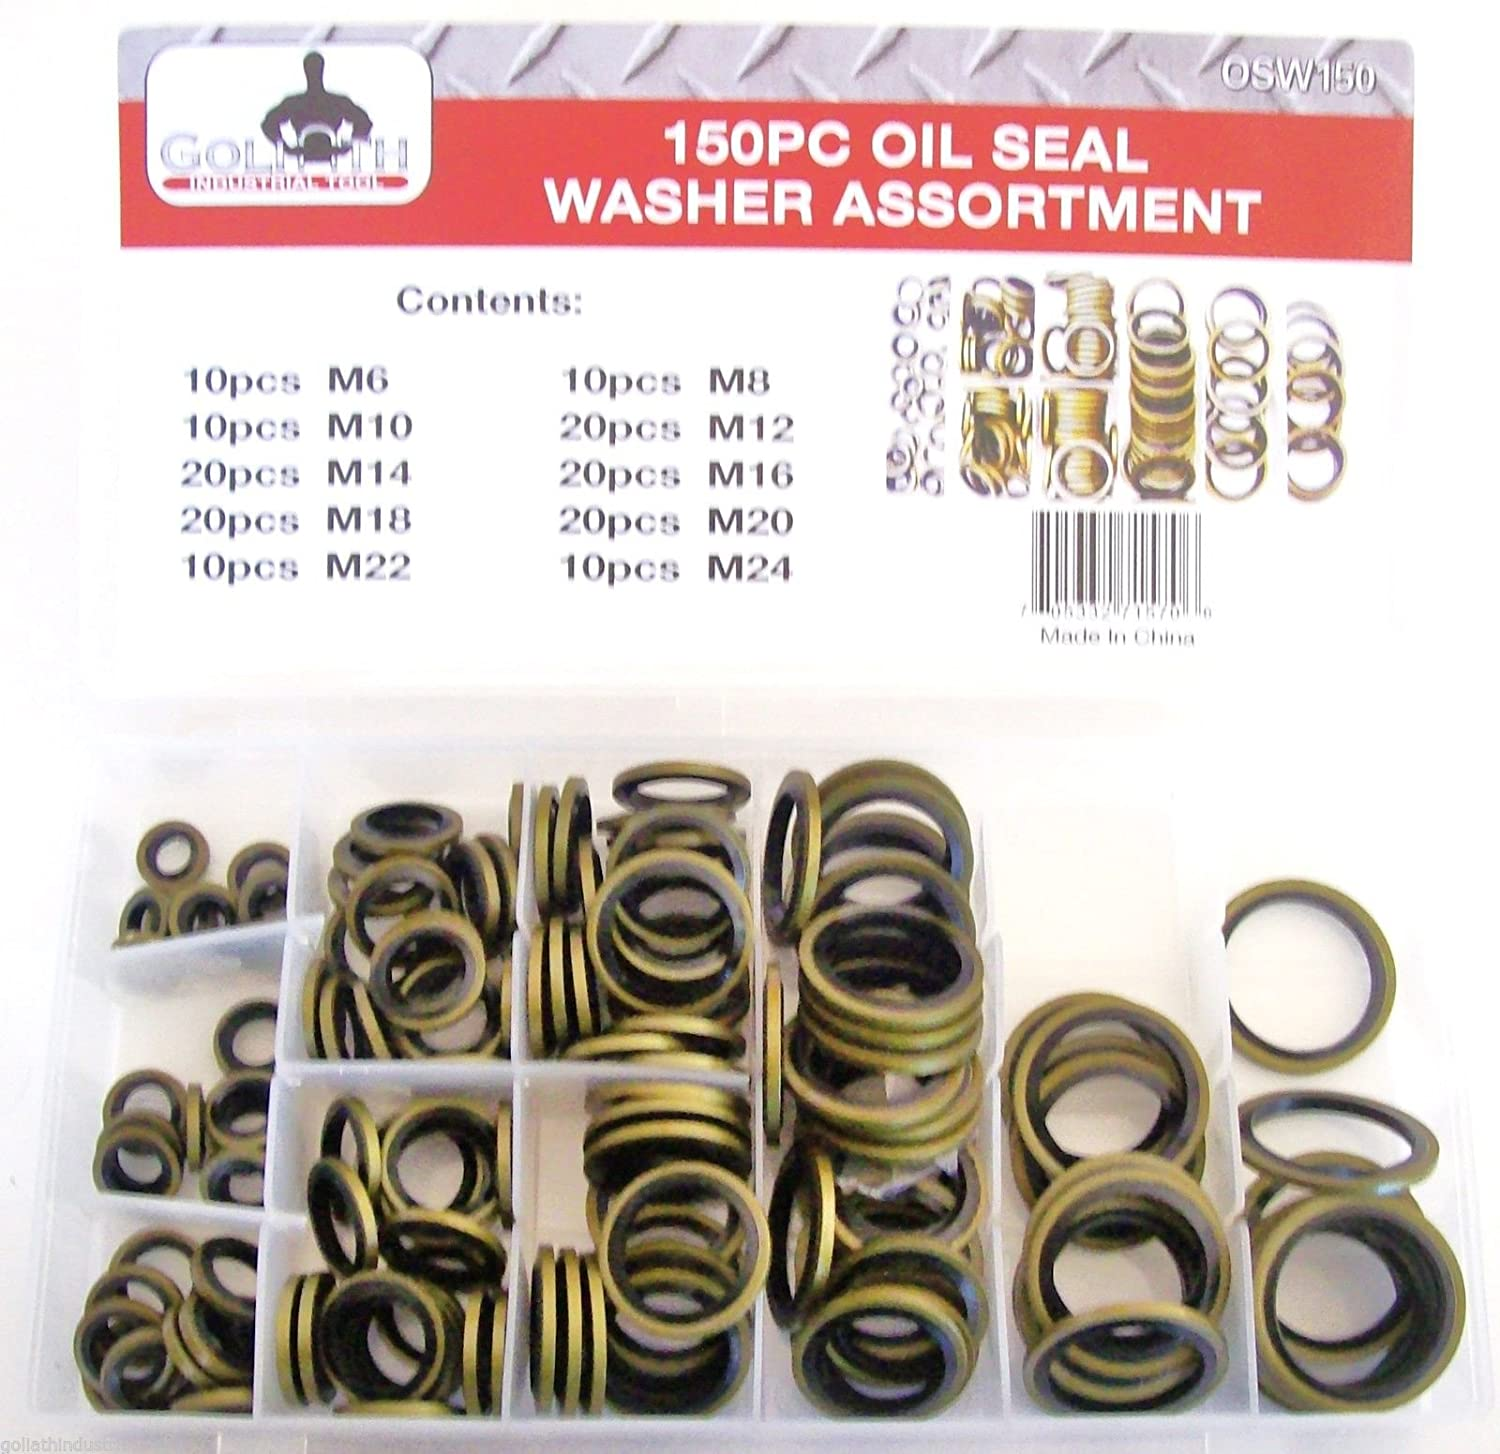 150pc Goliath Industrial Bonded Oil Seal Dowty Washer Assortment ...